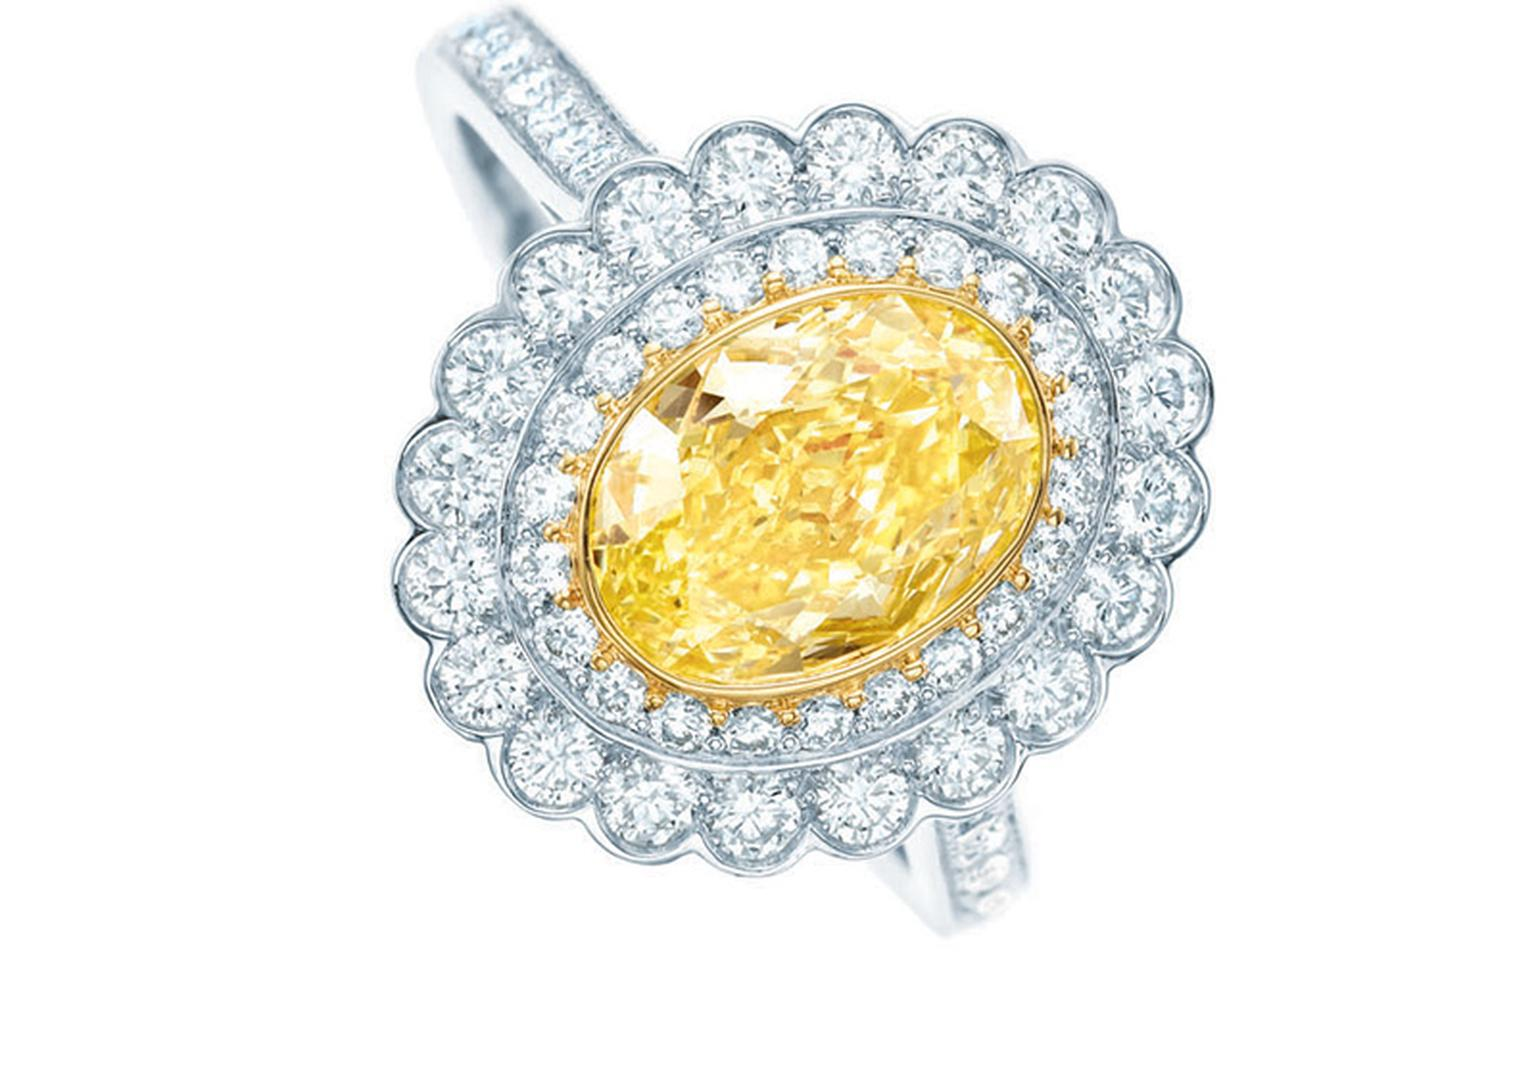 Tiffany-Enchant-yellow-and-white-diamond-rings-set-in-platinum2